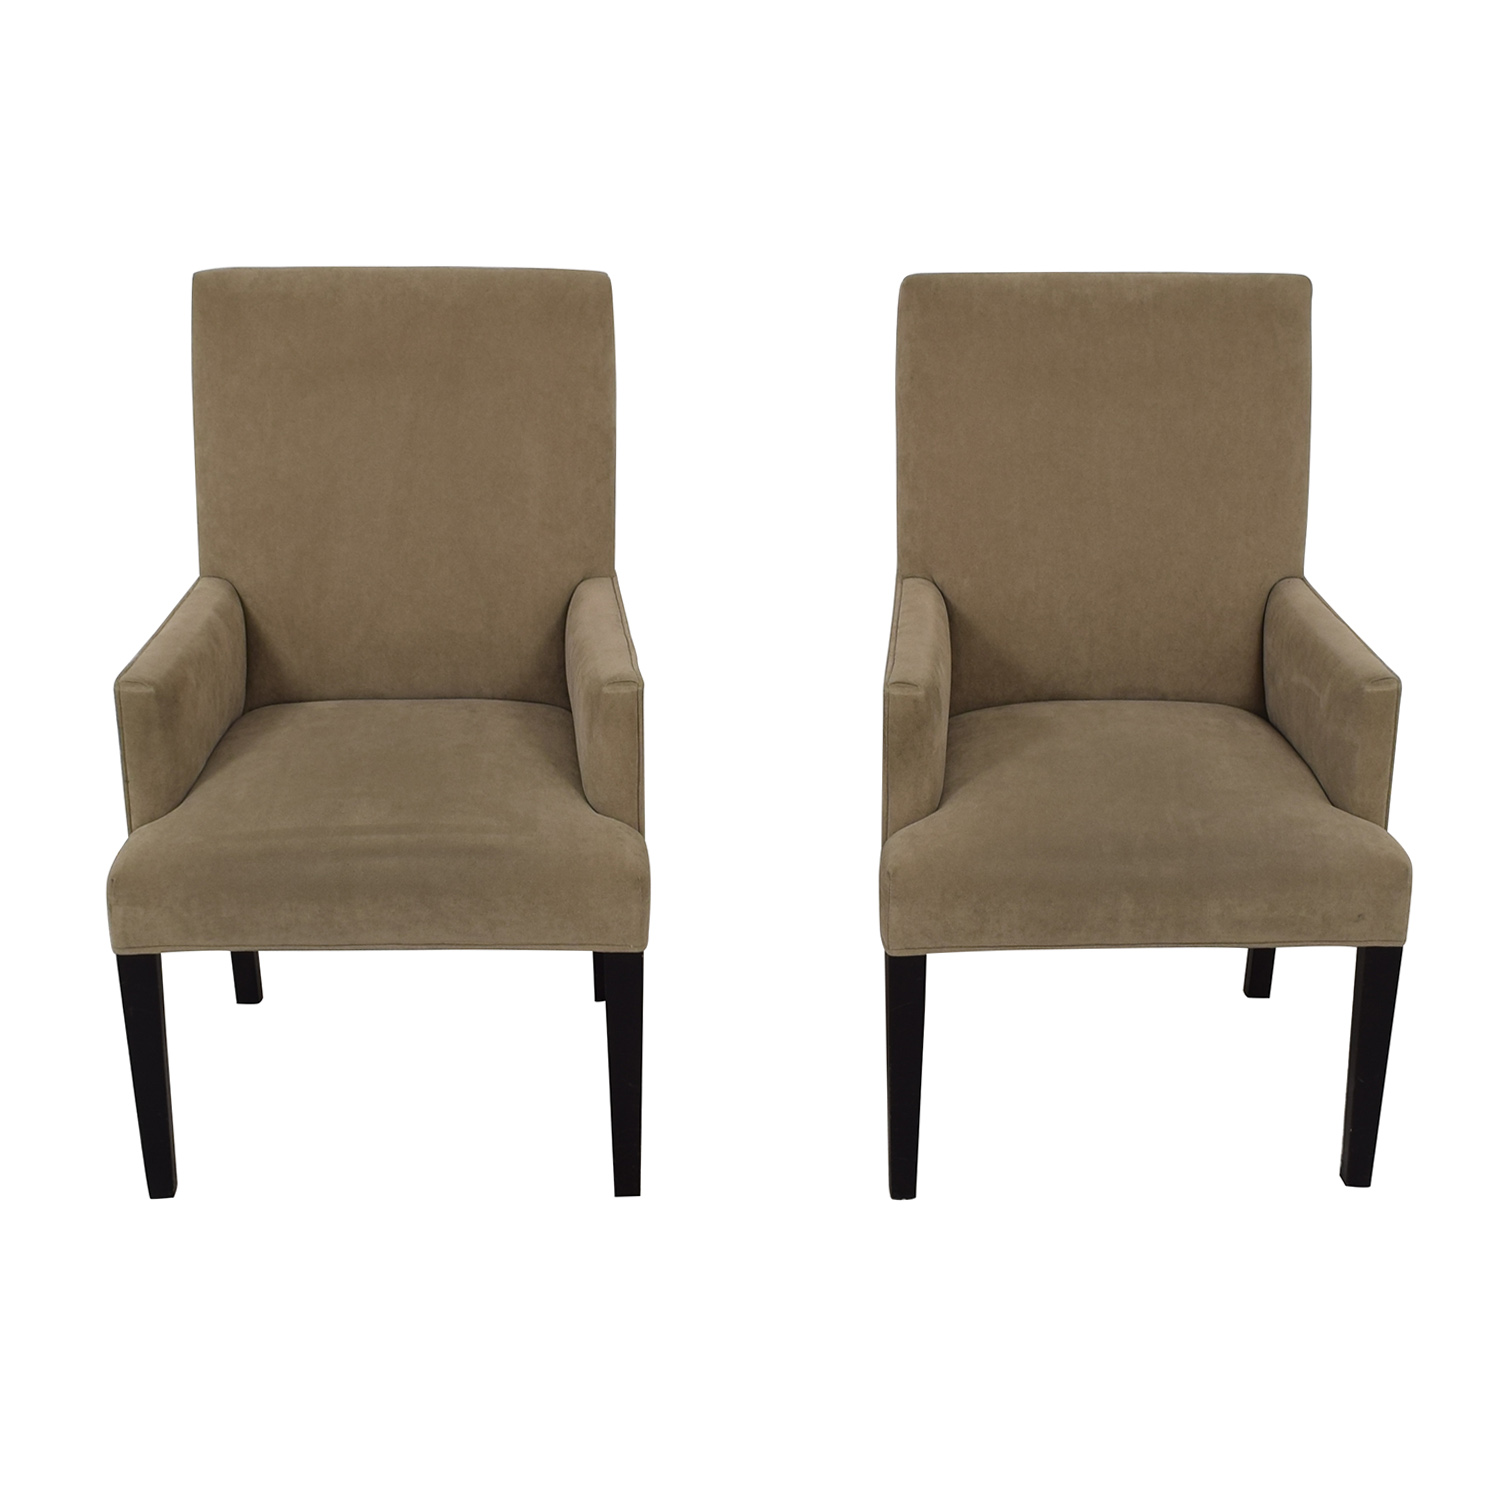 buy Crate & Barrel Dining Chairs Crate & Barrel Dining Chairs